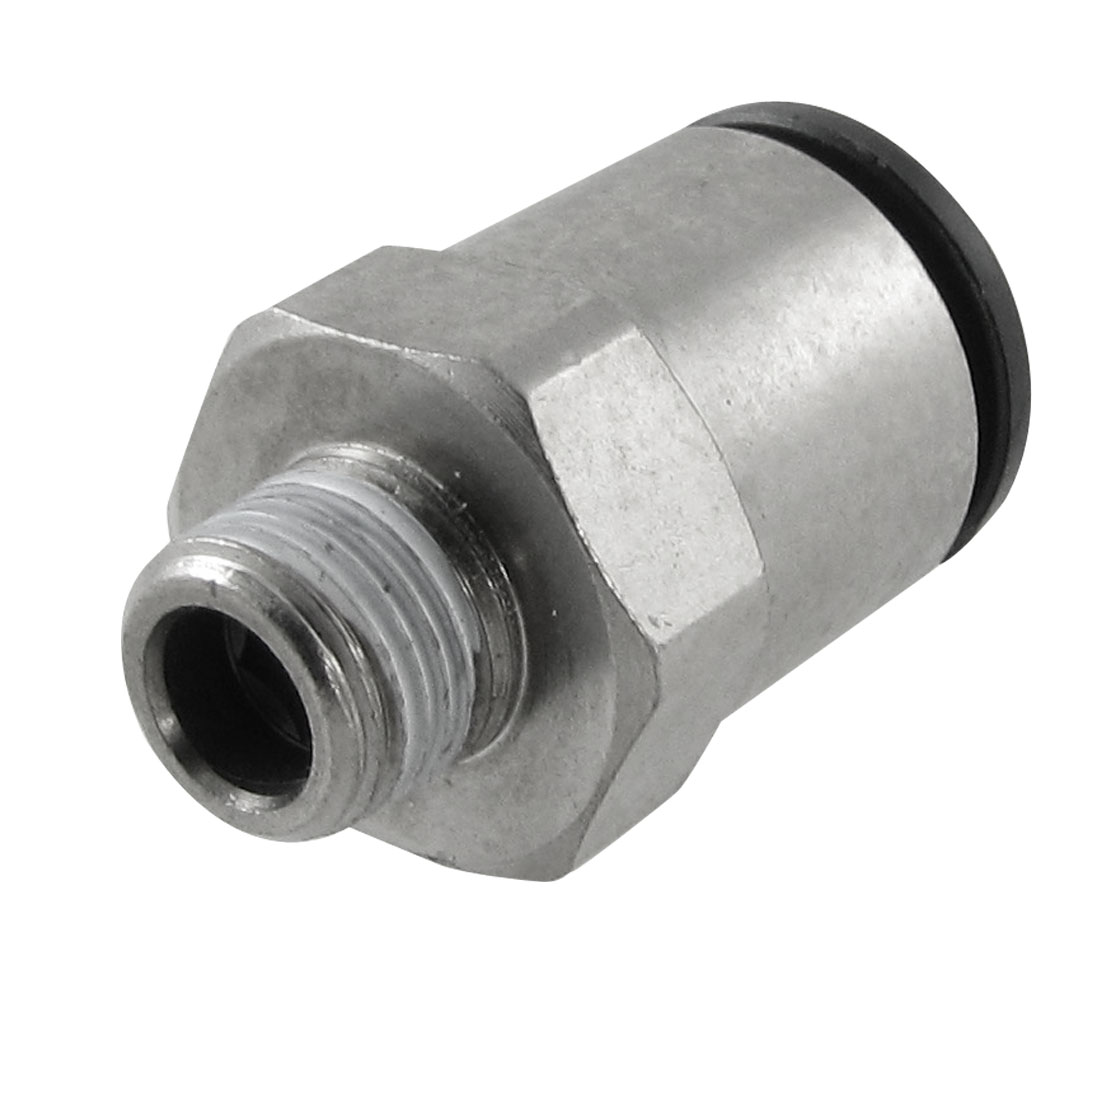 "2/5"" Straight Connector 9/25"" Male Thread Pneumatic Quick Fitting"